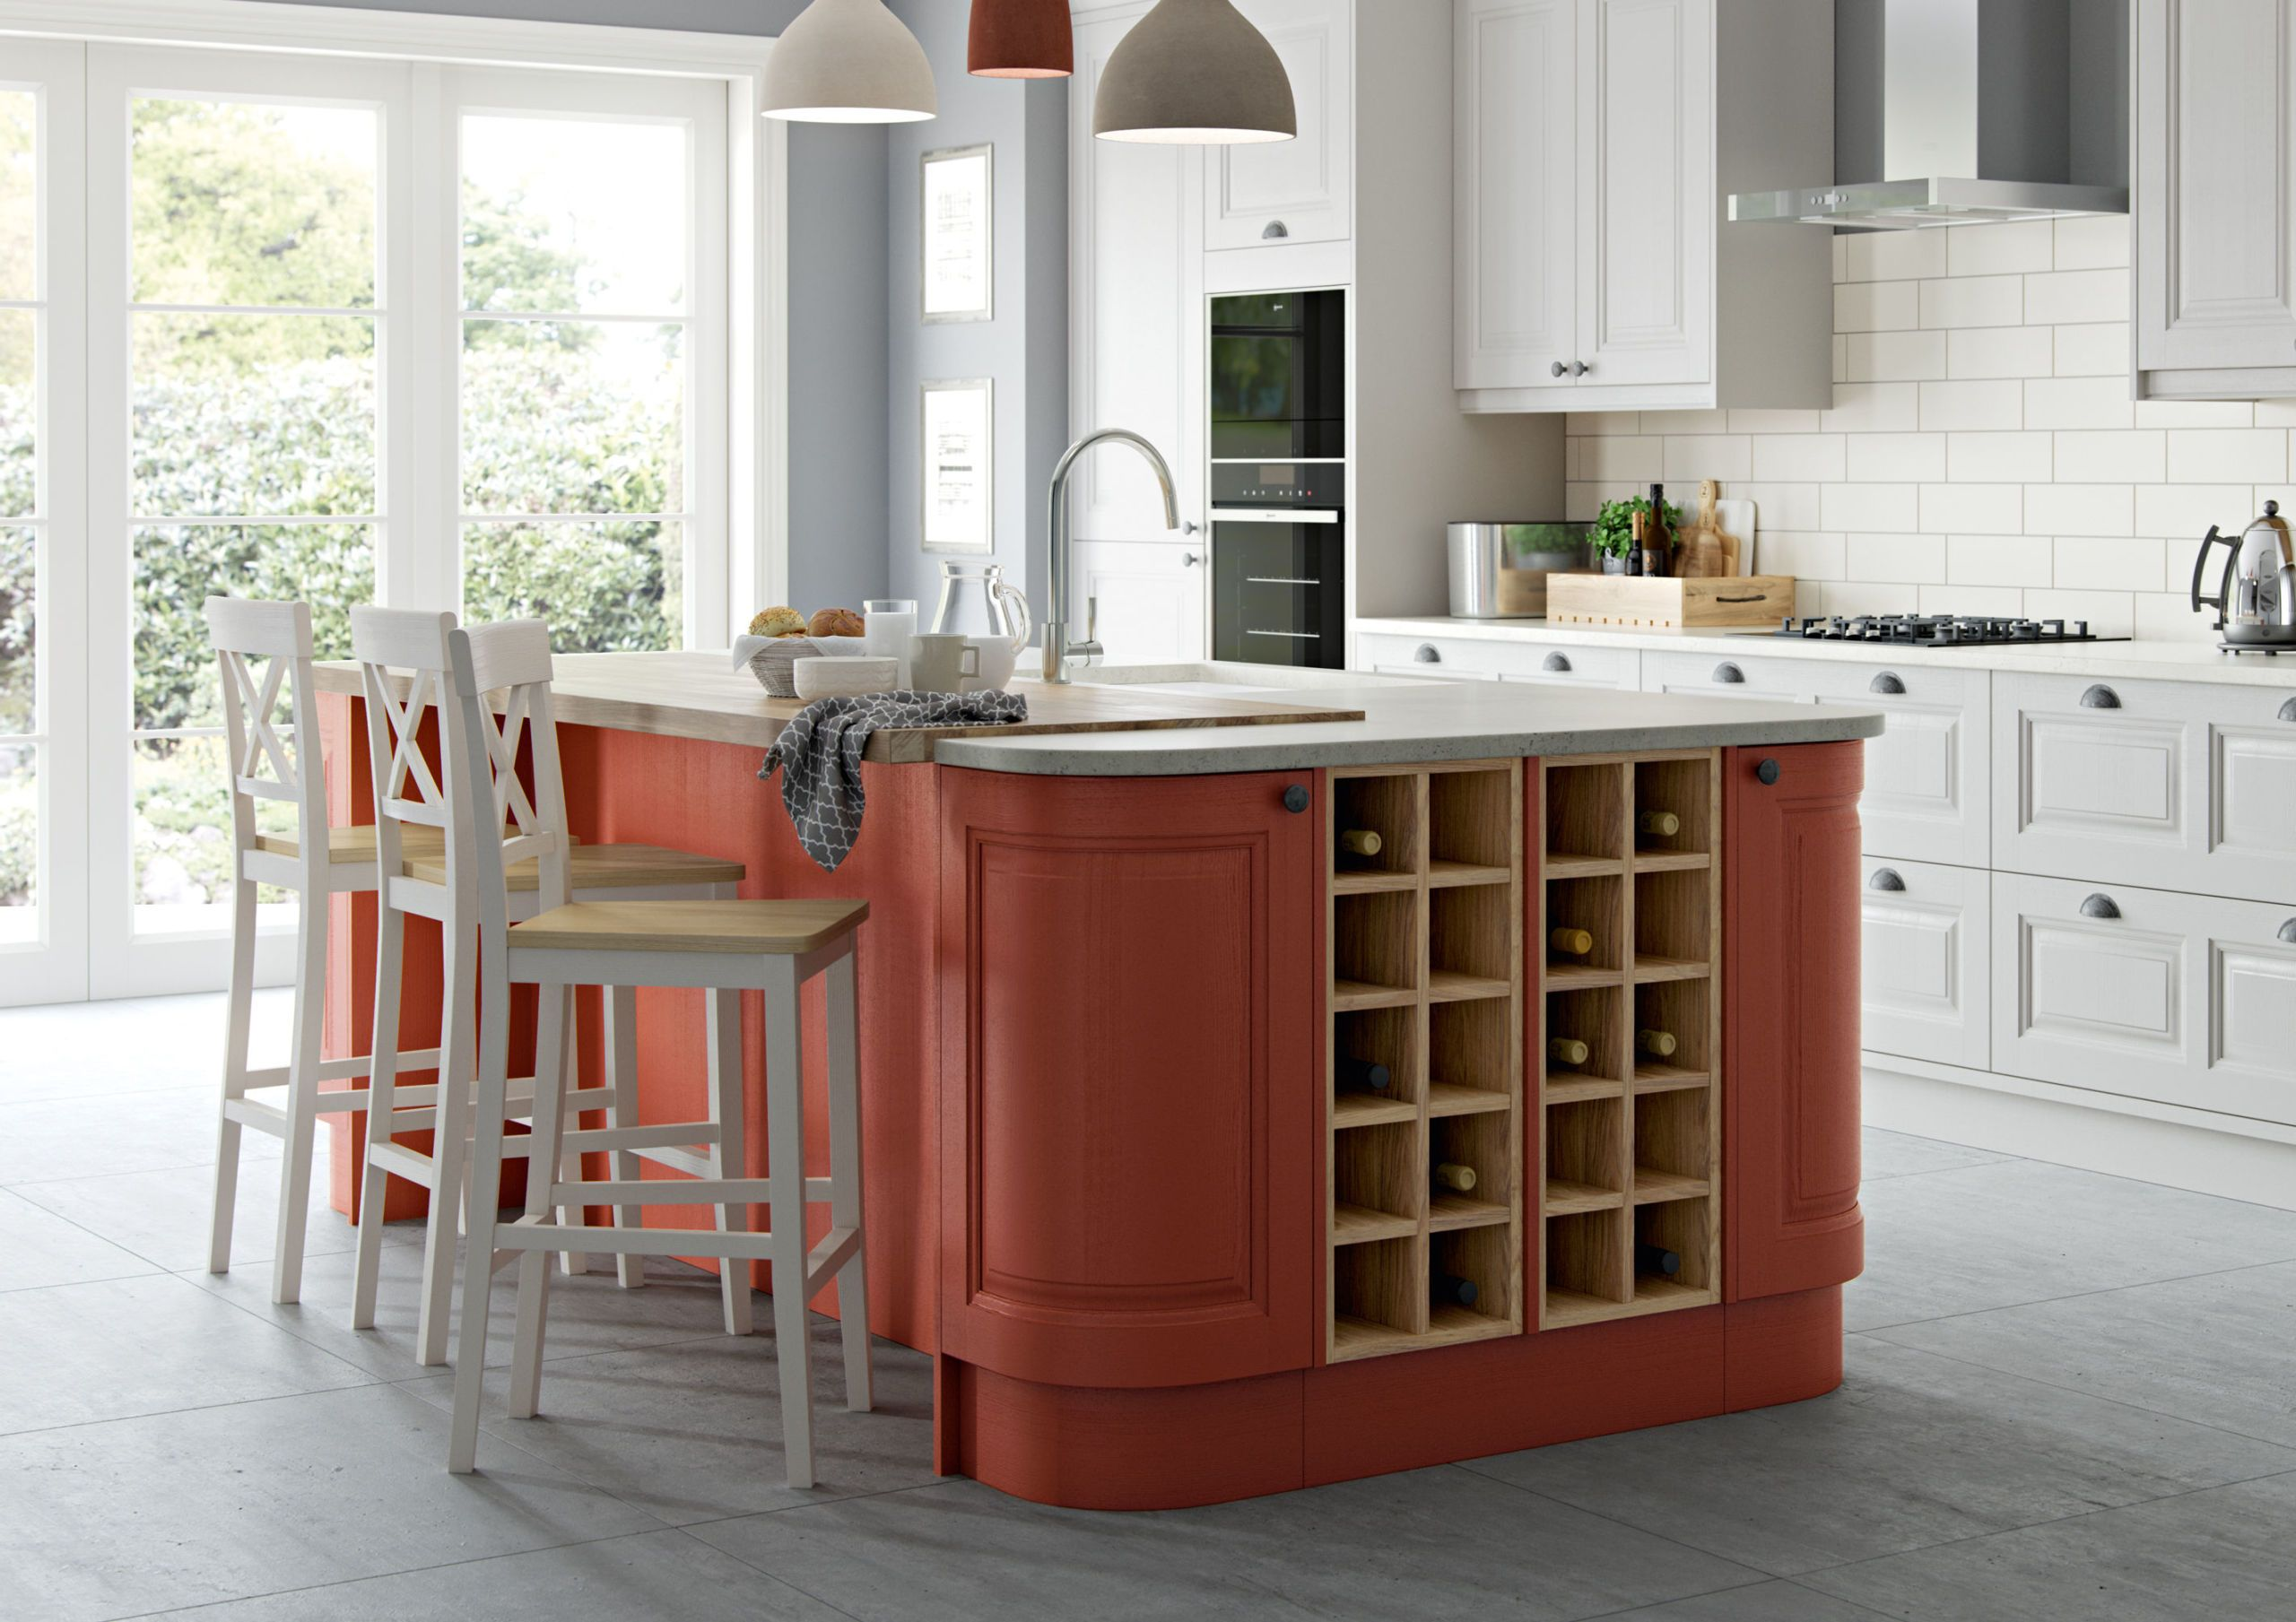 Masterclass Kitchens   Scotts Grey And Terracotta Sunset Colour Scheme    Carnegie Kitchen